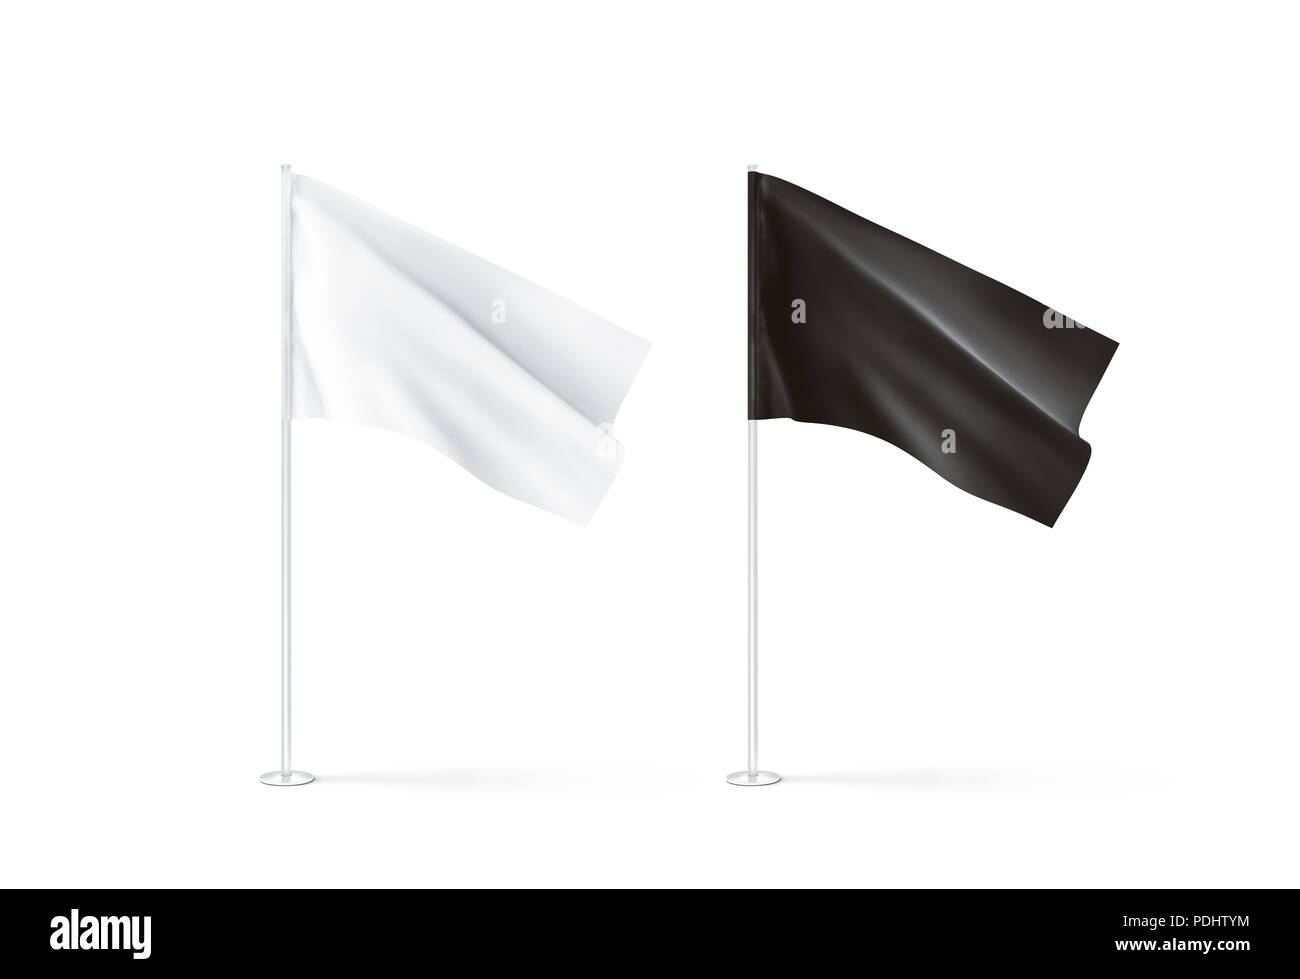 Blank black and white flag mockup set, waving, 3d rendnering. Clear rippled flagpole design mock up isolated. Pole with banner on wind. Business branding cloth pennon. Clean pillar logo presentation. - Stock Image